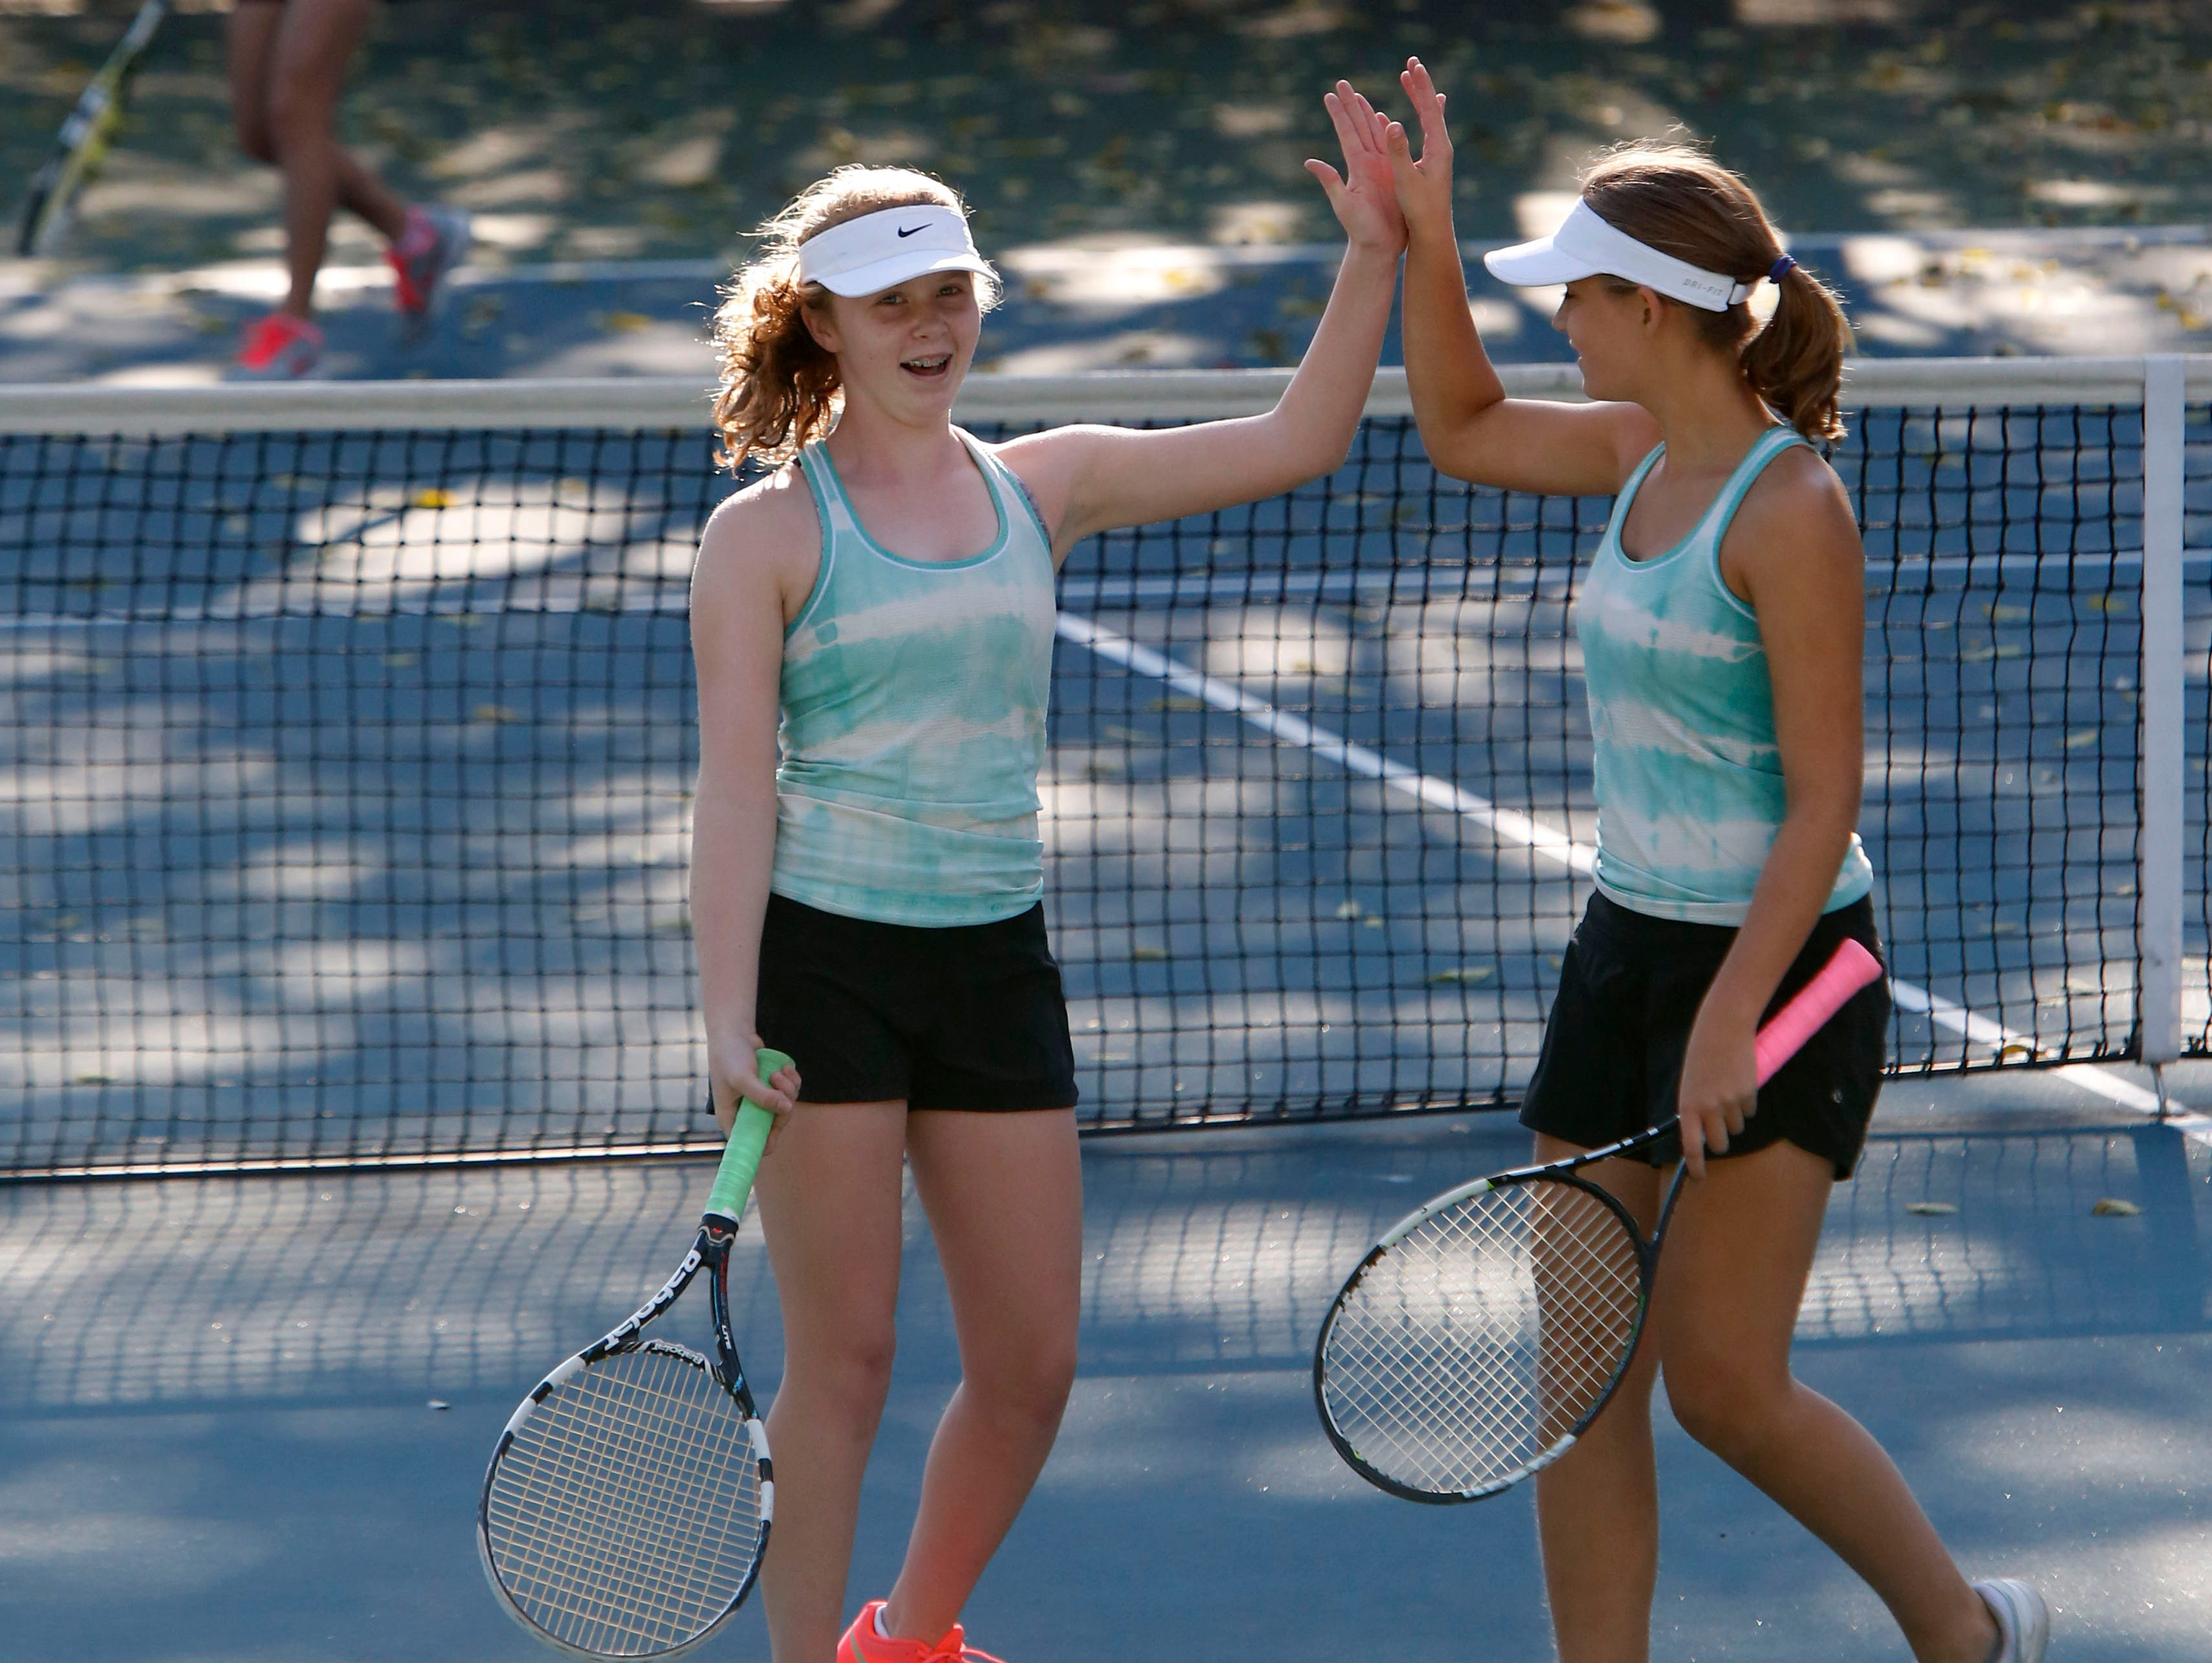 Bronxville's Katharine Frost, left, and teammate Eva Dani hi-five during a doubles game against Rye Neck's Mizuki Shionoya and Clemence Balzano in the Conference III tennis tournament Oct. 15, 2015 at Edgemont High School in Scarsdale.